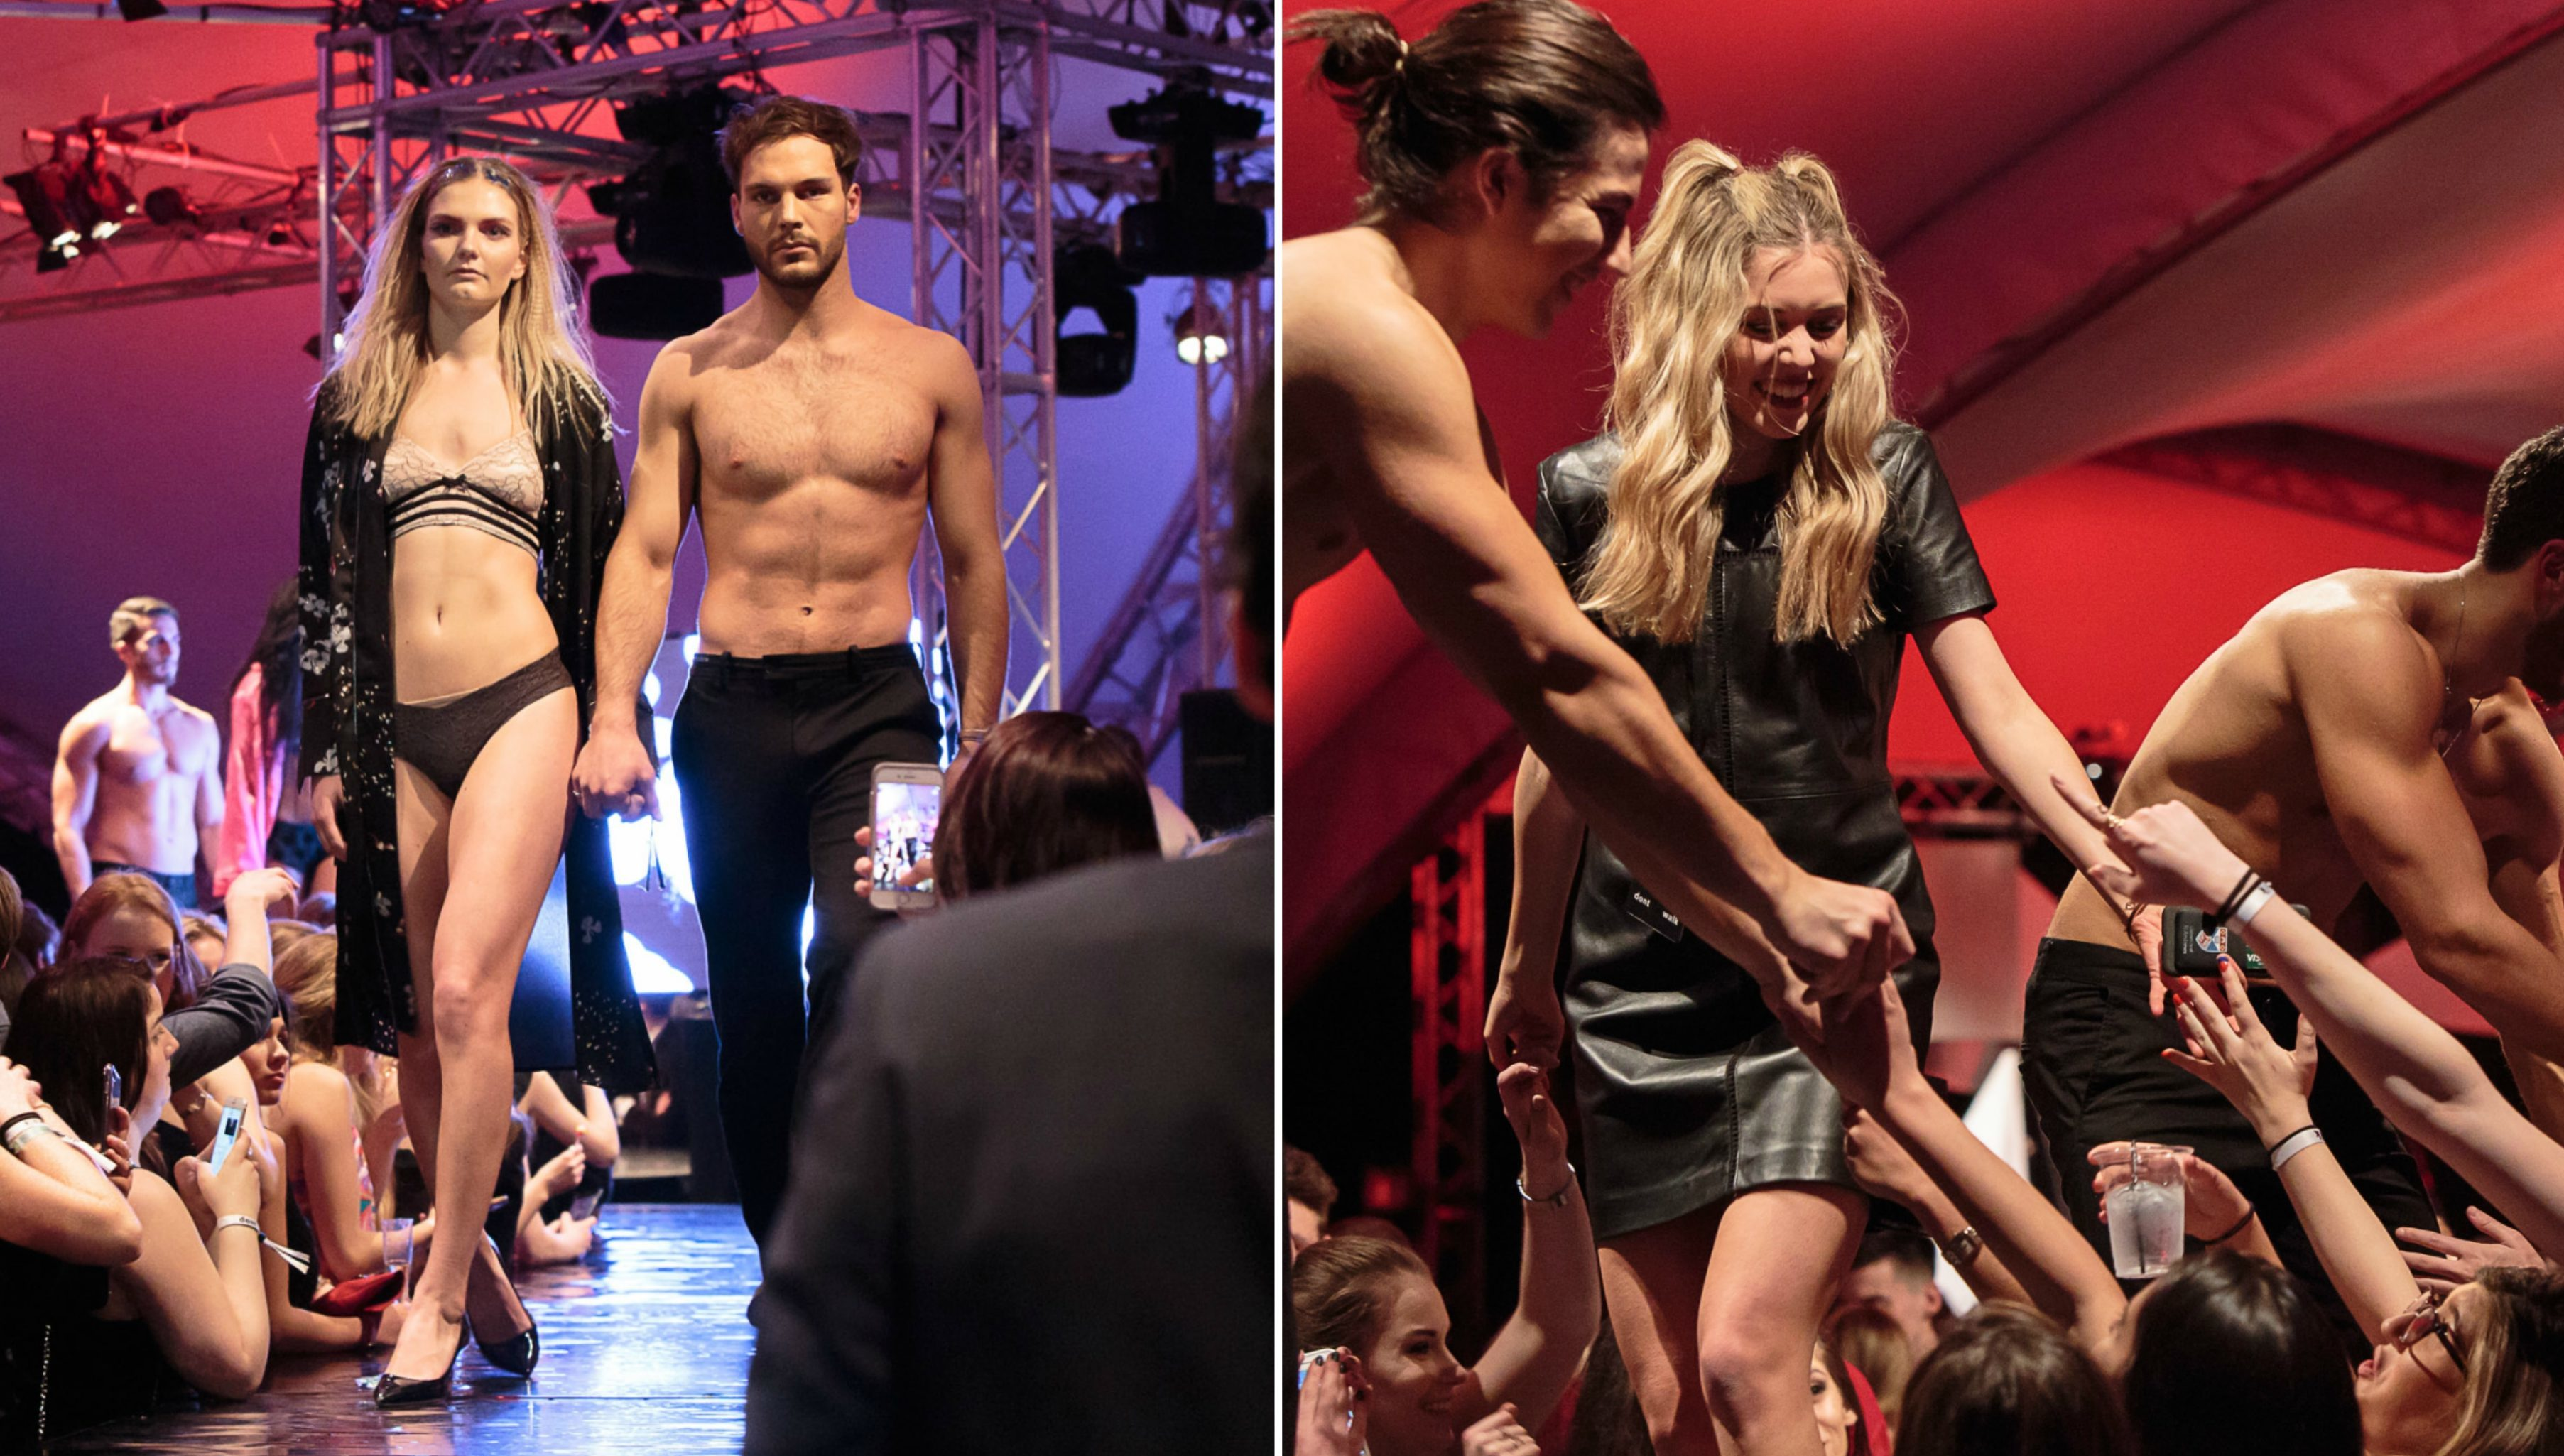 Don't Walk fashion show was staged for the 17th time in St Andrews